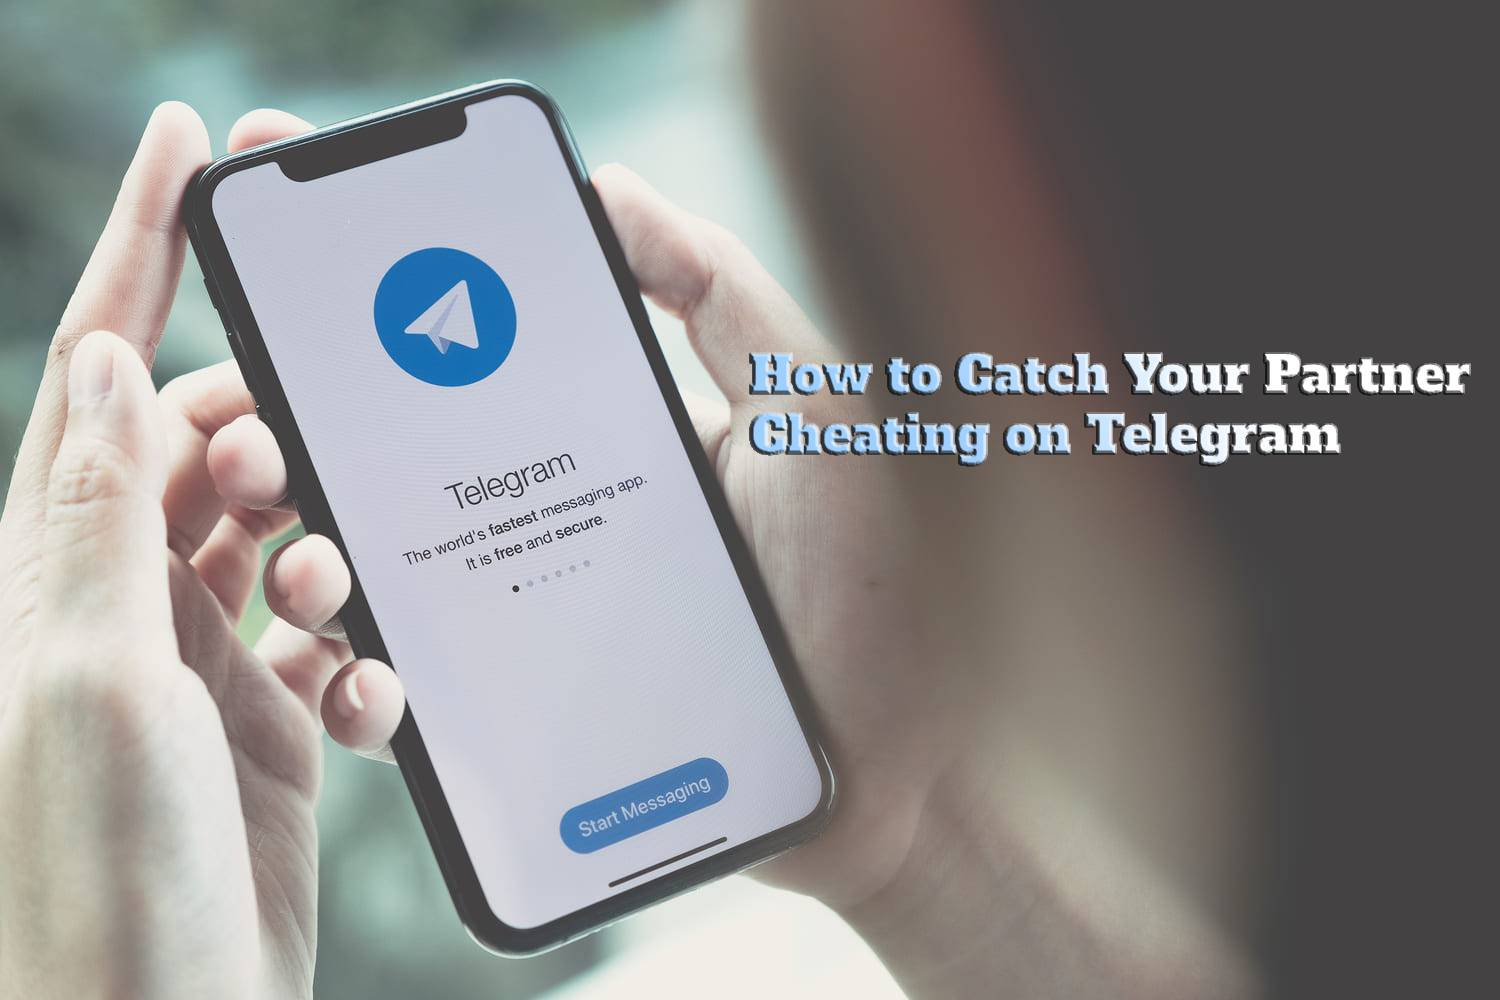 How to Catch Your Partner Cheating on Telegram